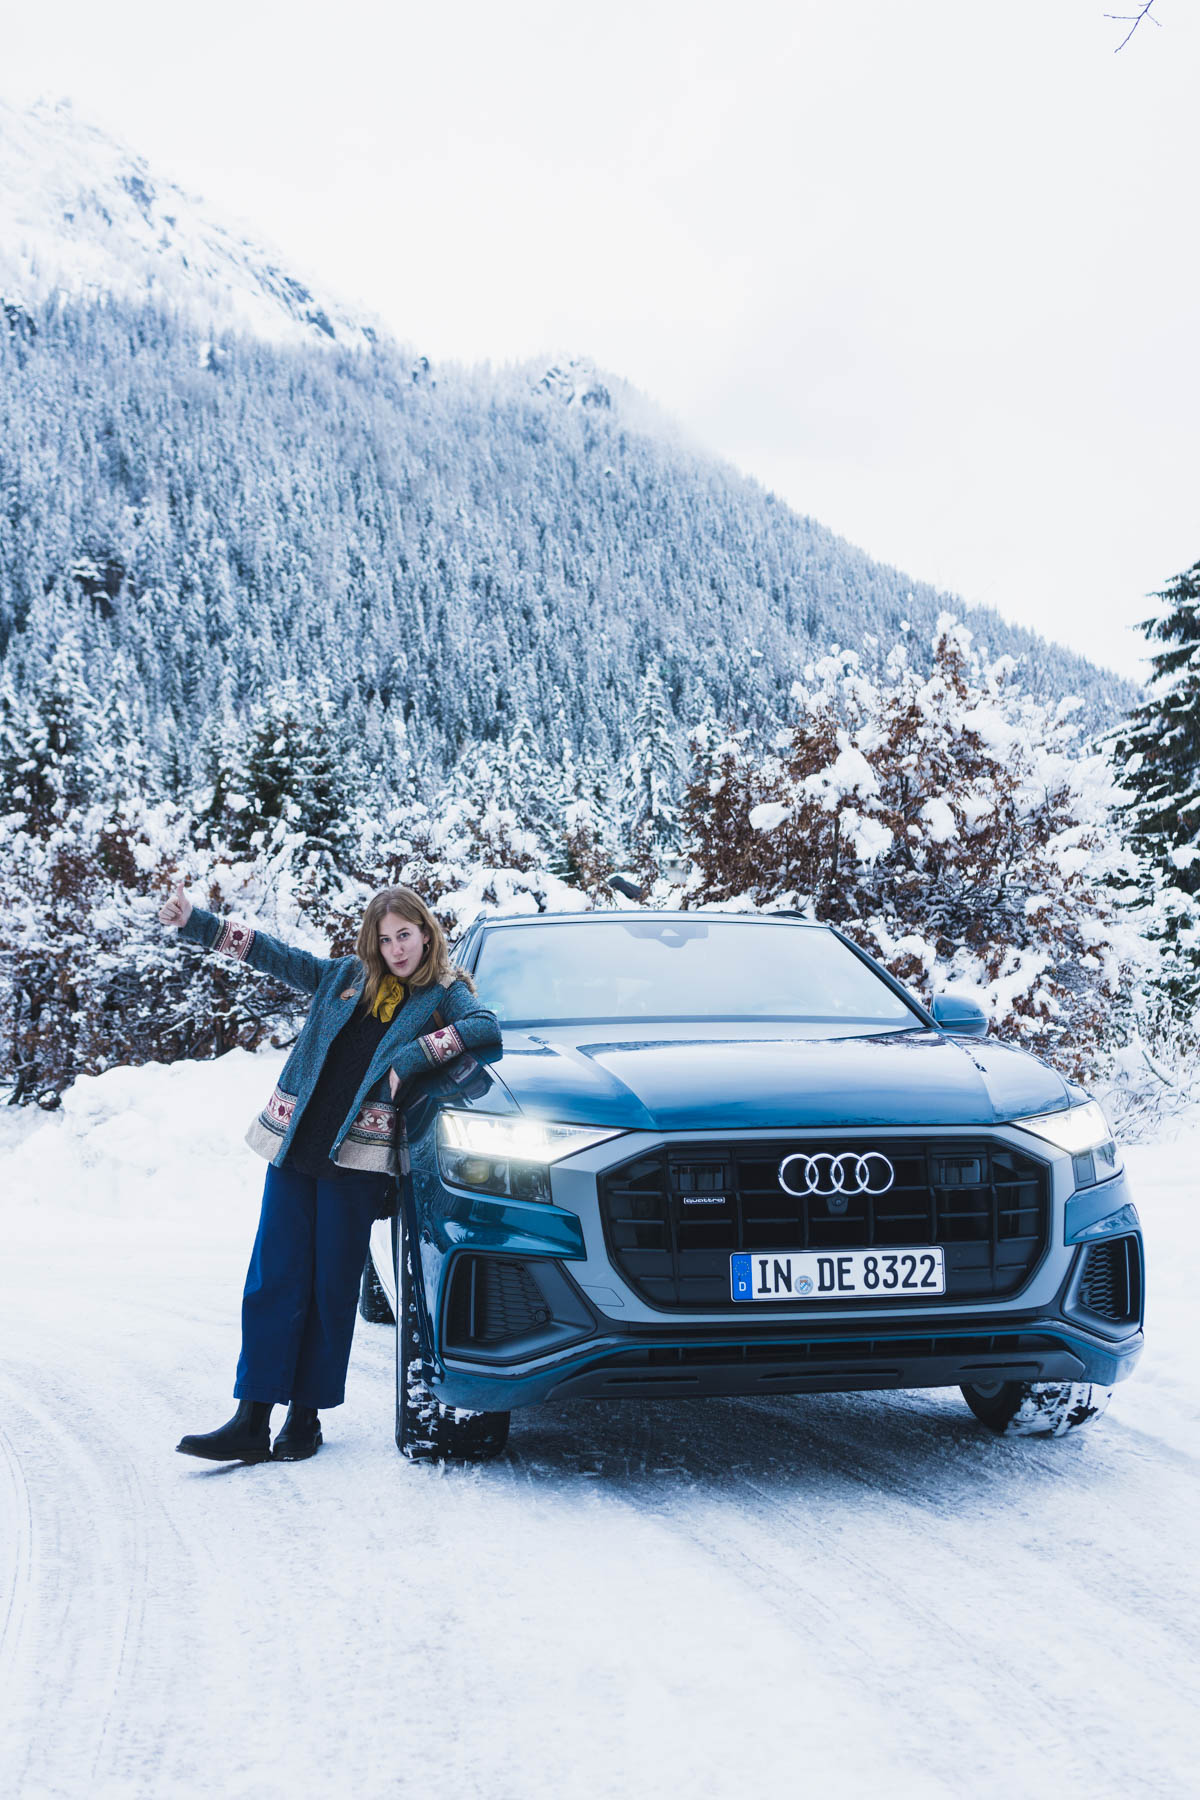 best-of-the-alps-audi-q8-car-megeve-chamonix-mont-blanc-france-crans-montana-grindelwald-eiger-switzerland-food-foodie-where-to-eat-best-tips-recommendation-guide-travel-2018-110.jpg